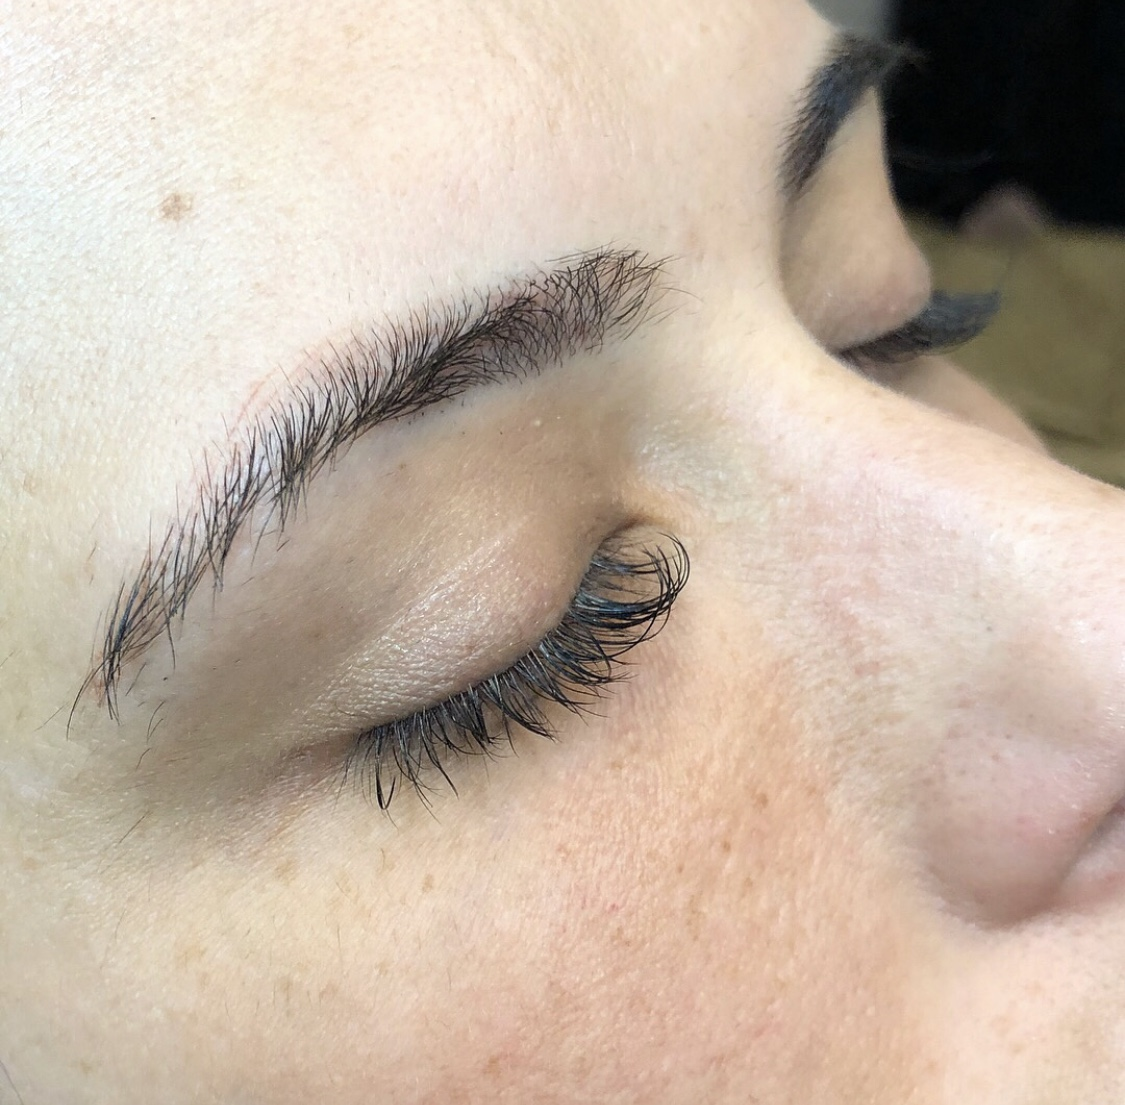 tulsa microbladed eyebrows, emily gemma microbladed eyebrows, microblading reviews processp pain pinterest, tulsa brow bar aimee,